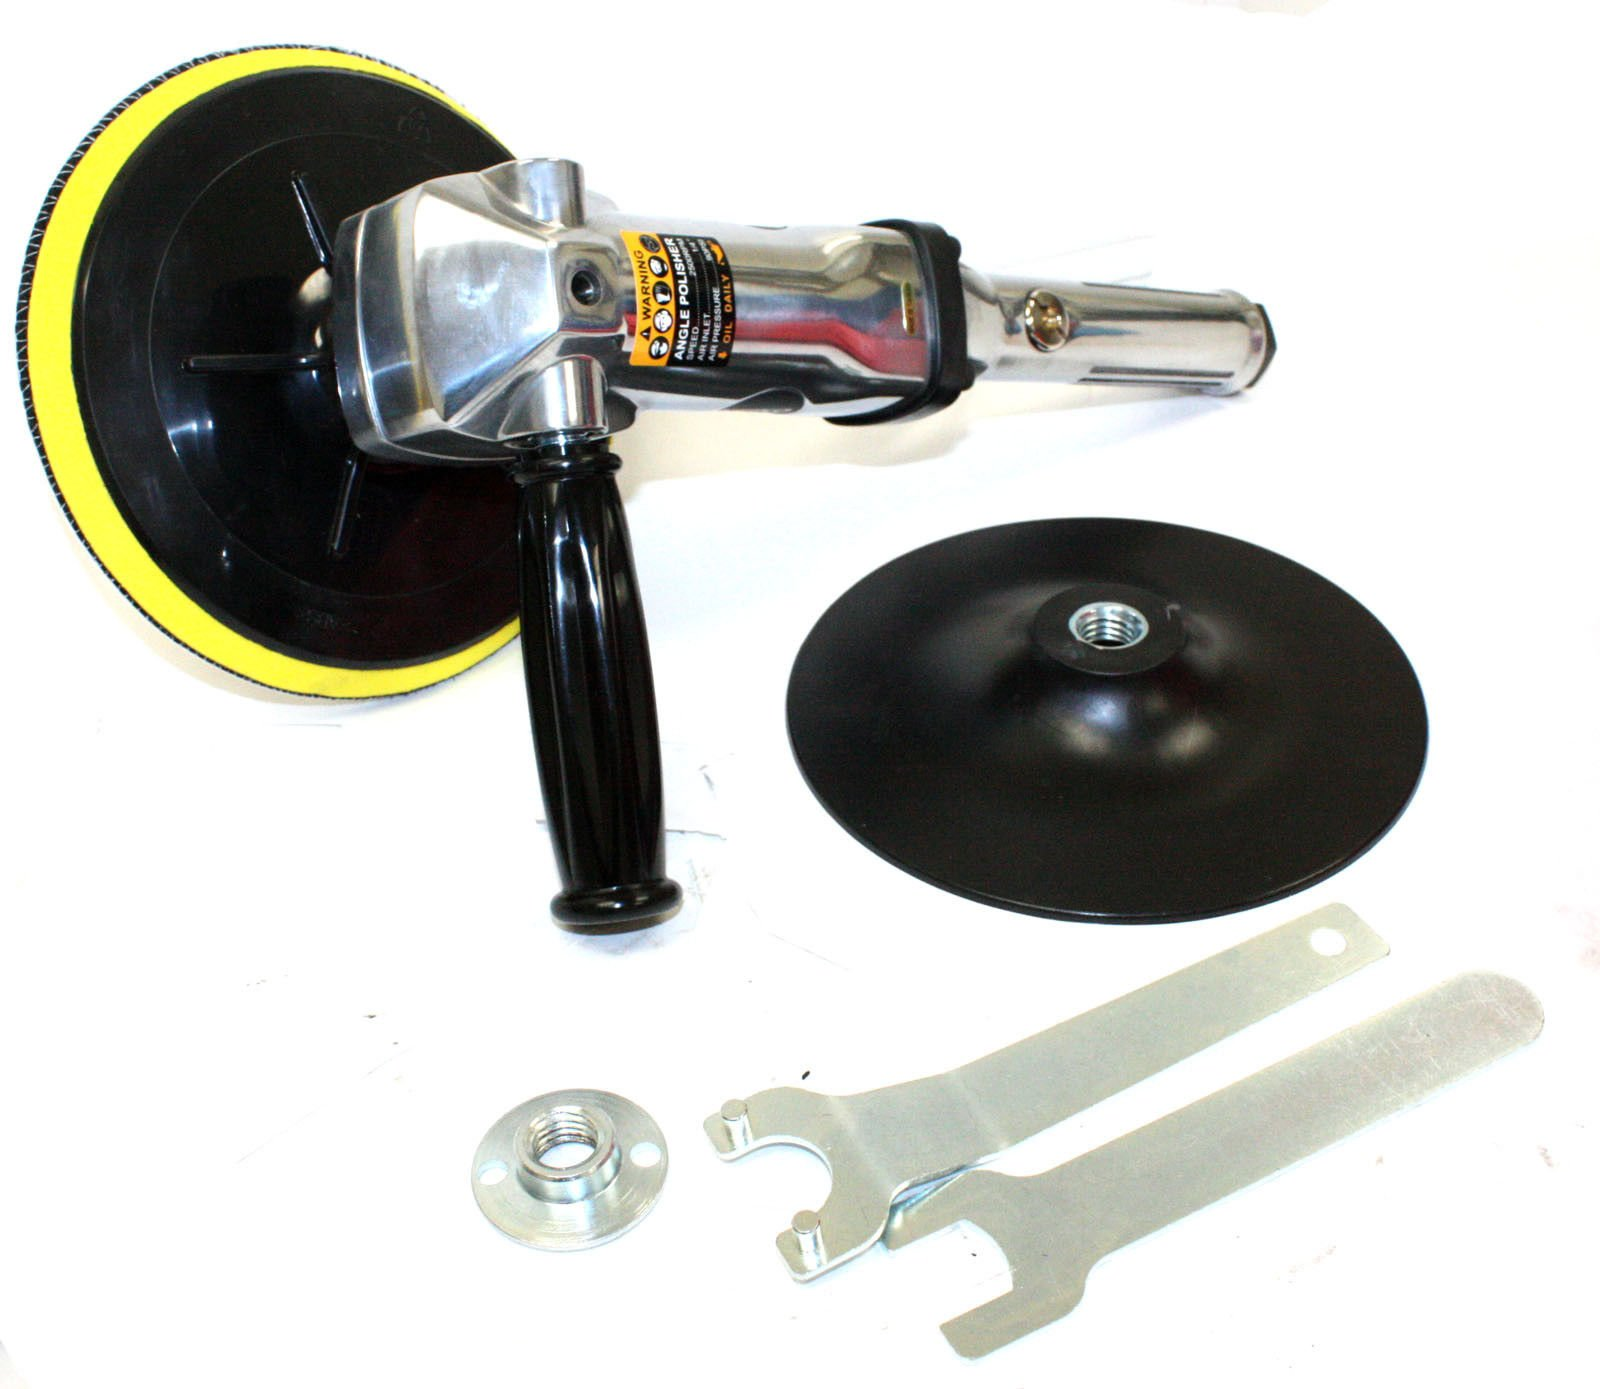 M2 Outlet 7'' Stainless Pneumatic Variable Speed 1,500-2,600 RPM Air Angle Polisher Buffer by M2 Outlet (Image #2)